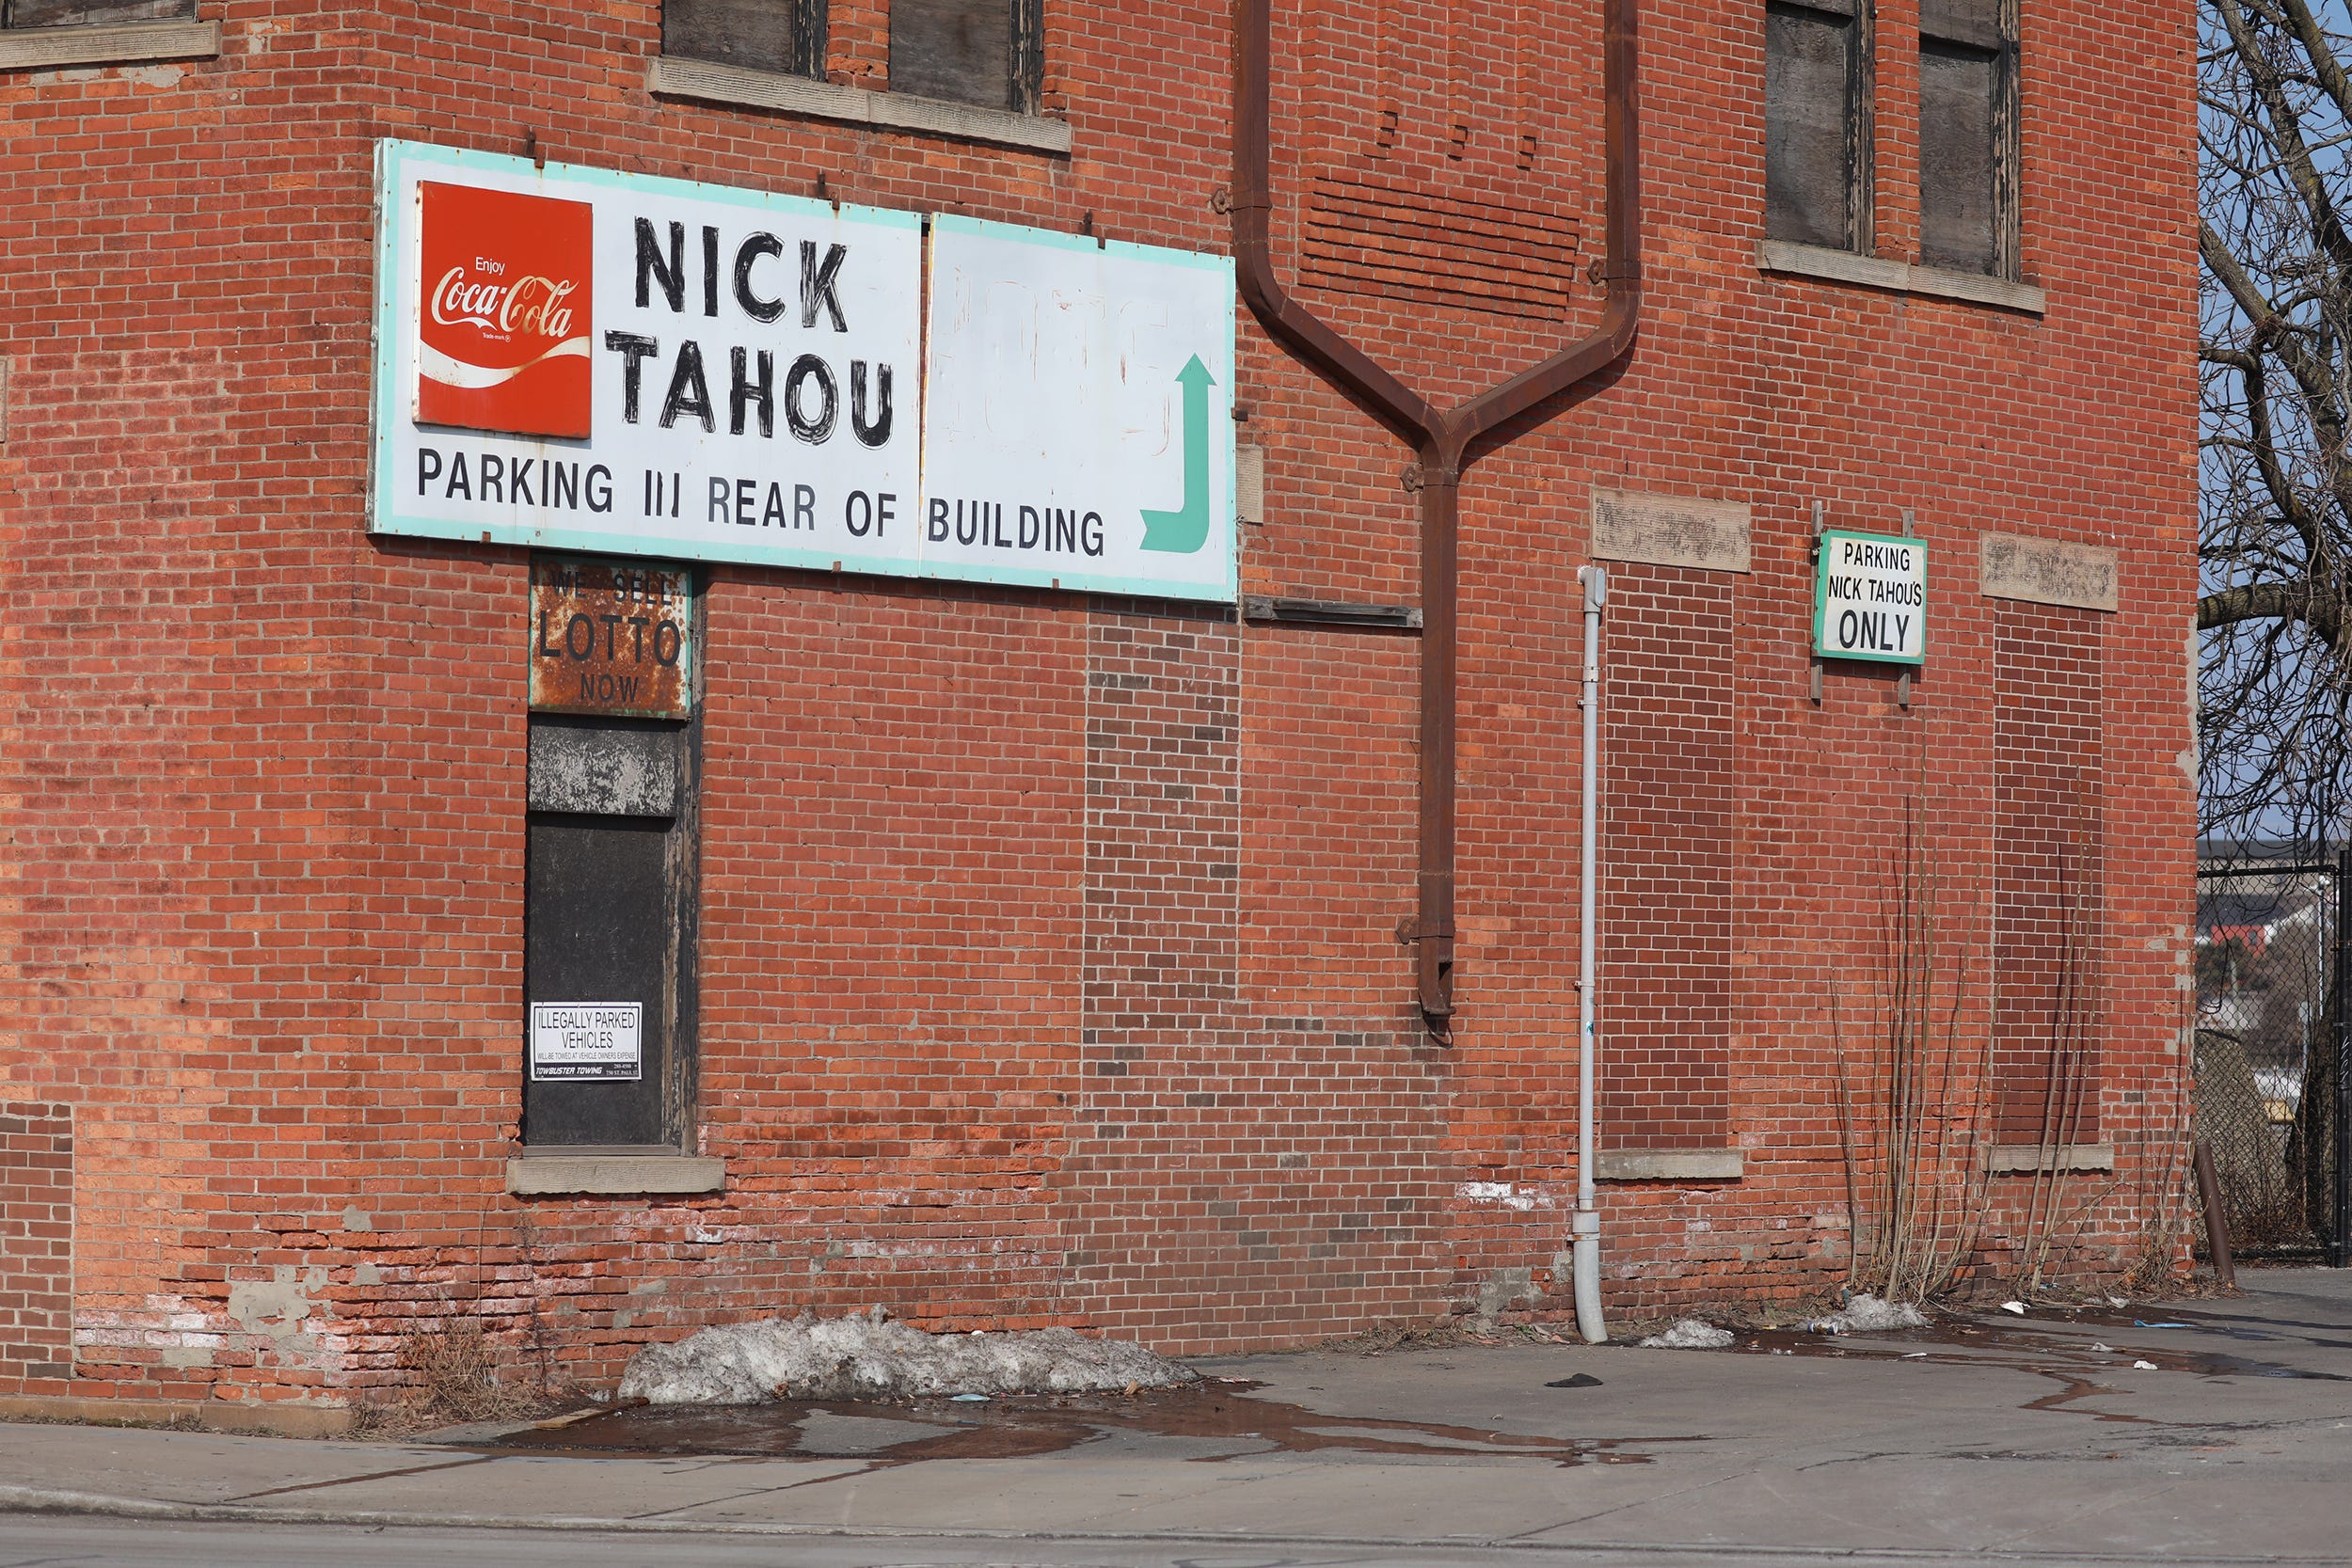 When regulars think Nick Tahou Hots, they think of this iconic brick building and its vintage sign. The building, now up for sale, was once...